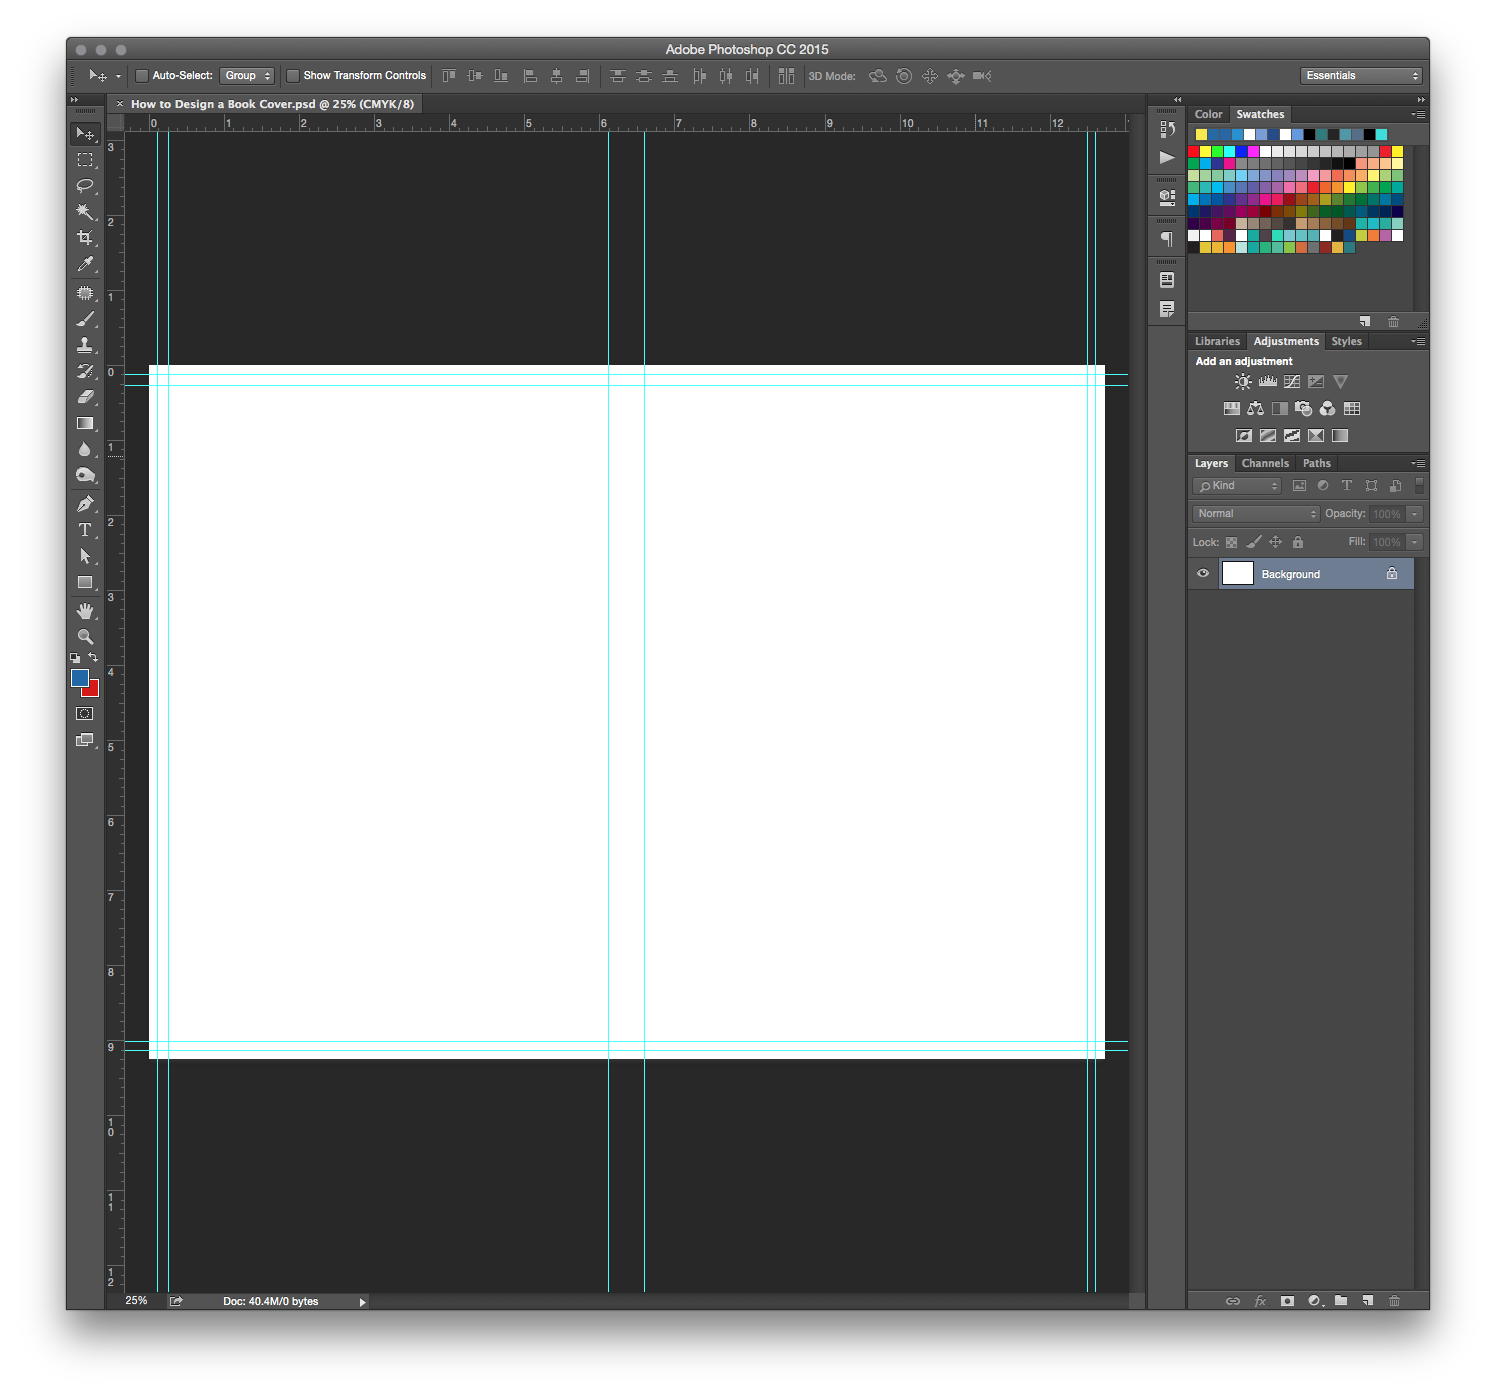 How to Design a Book Cover in Photoshop